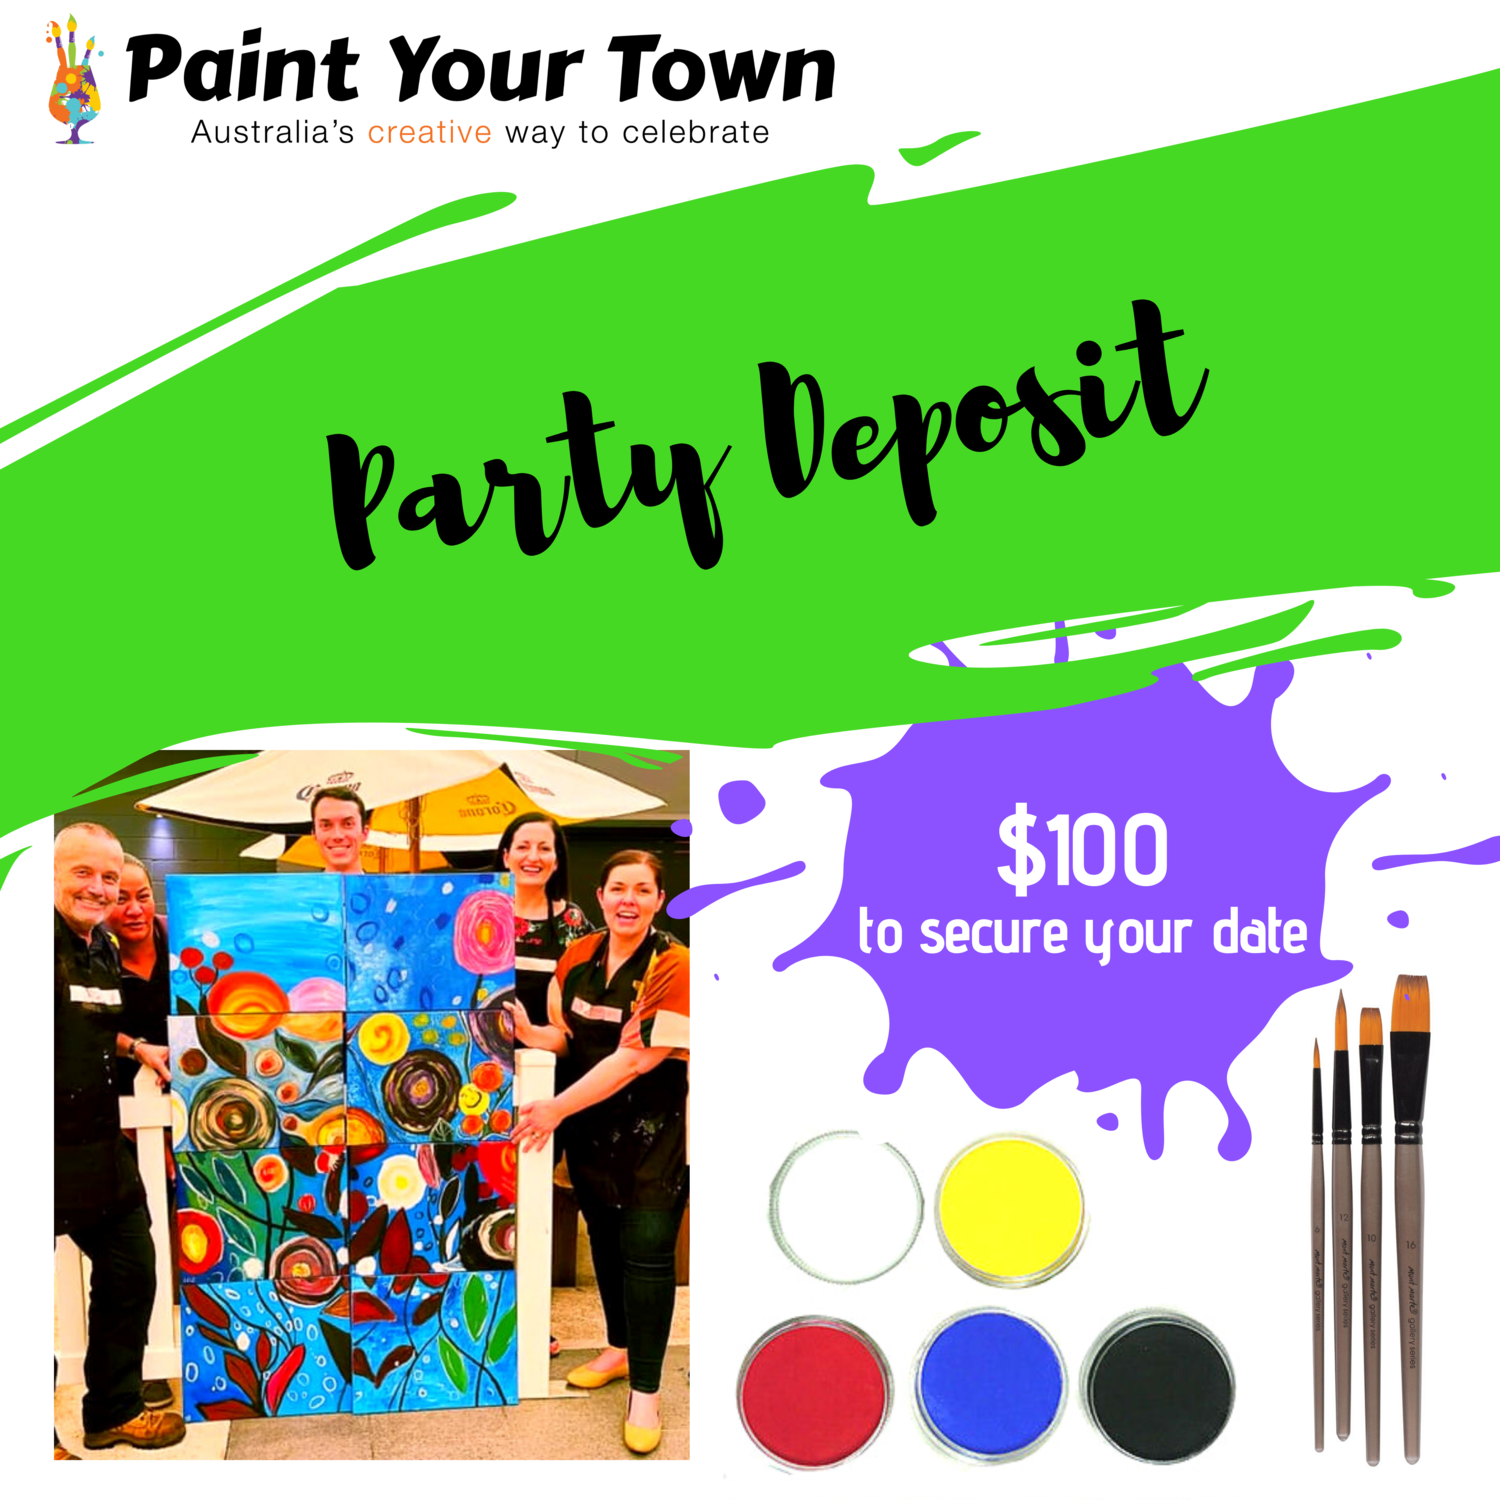 Private paint & sip pARTy deposit